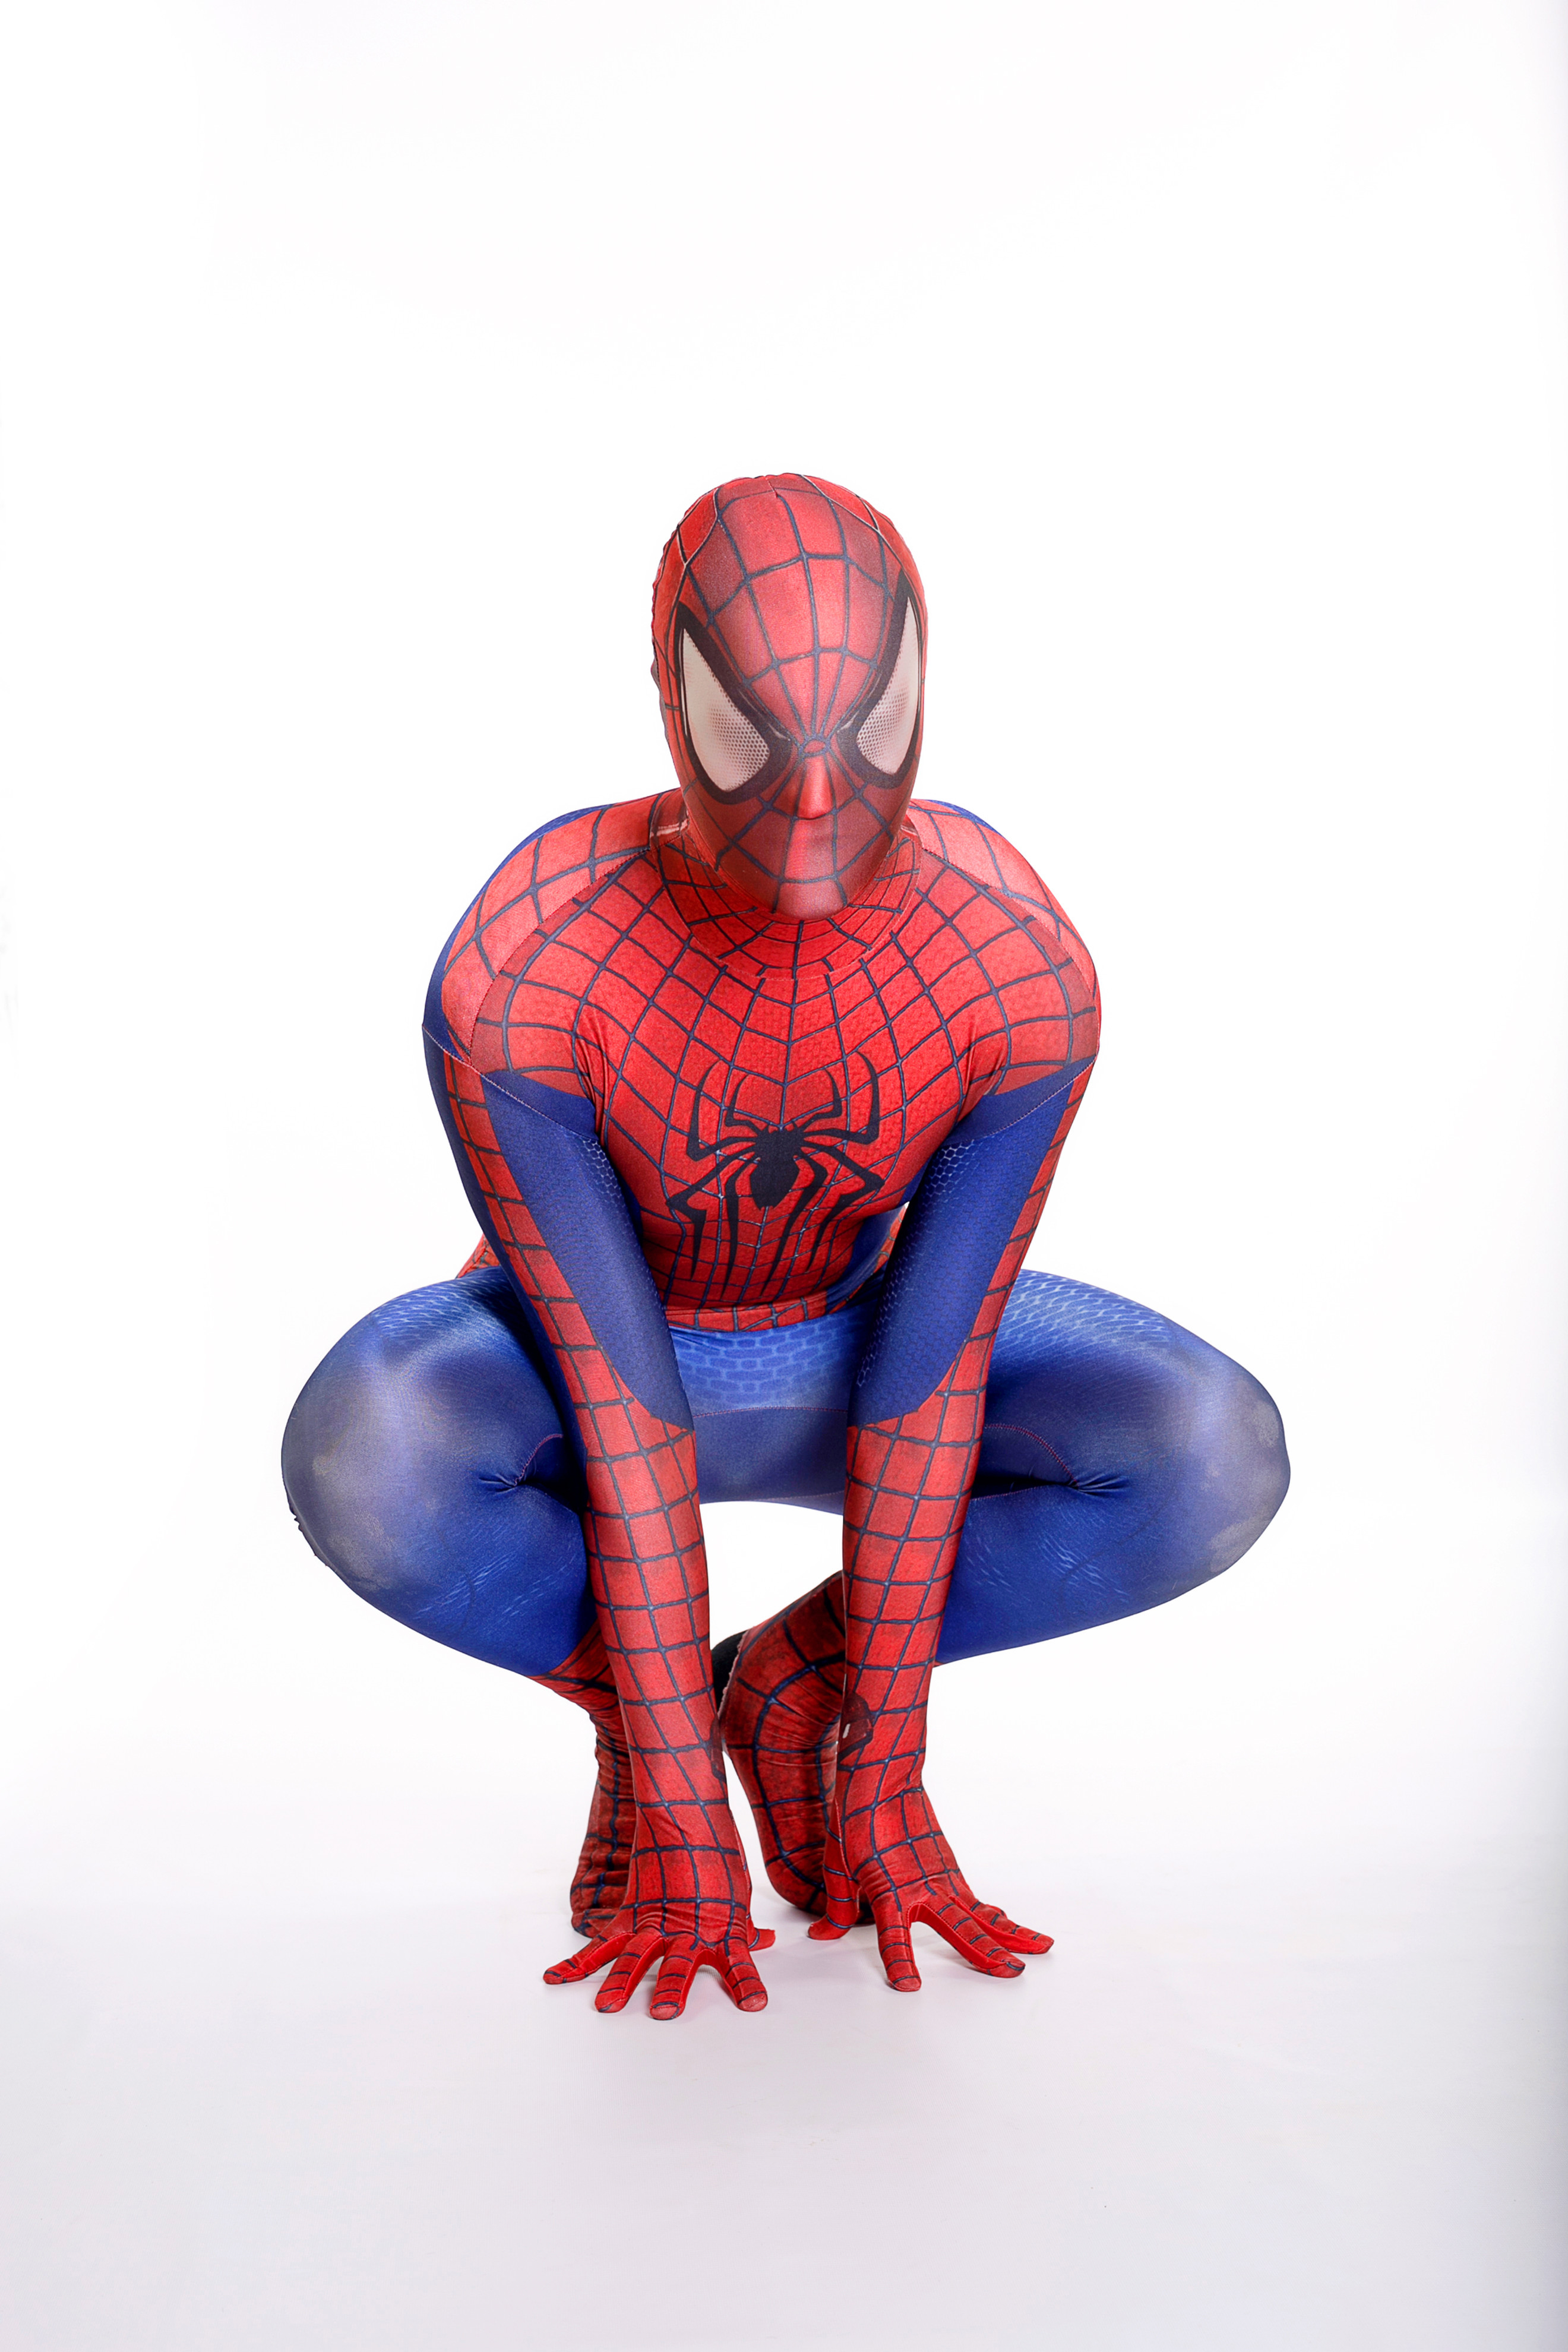 30mins Spidey Character Visit